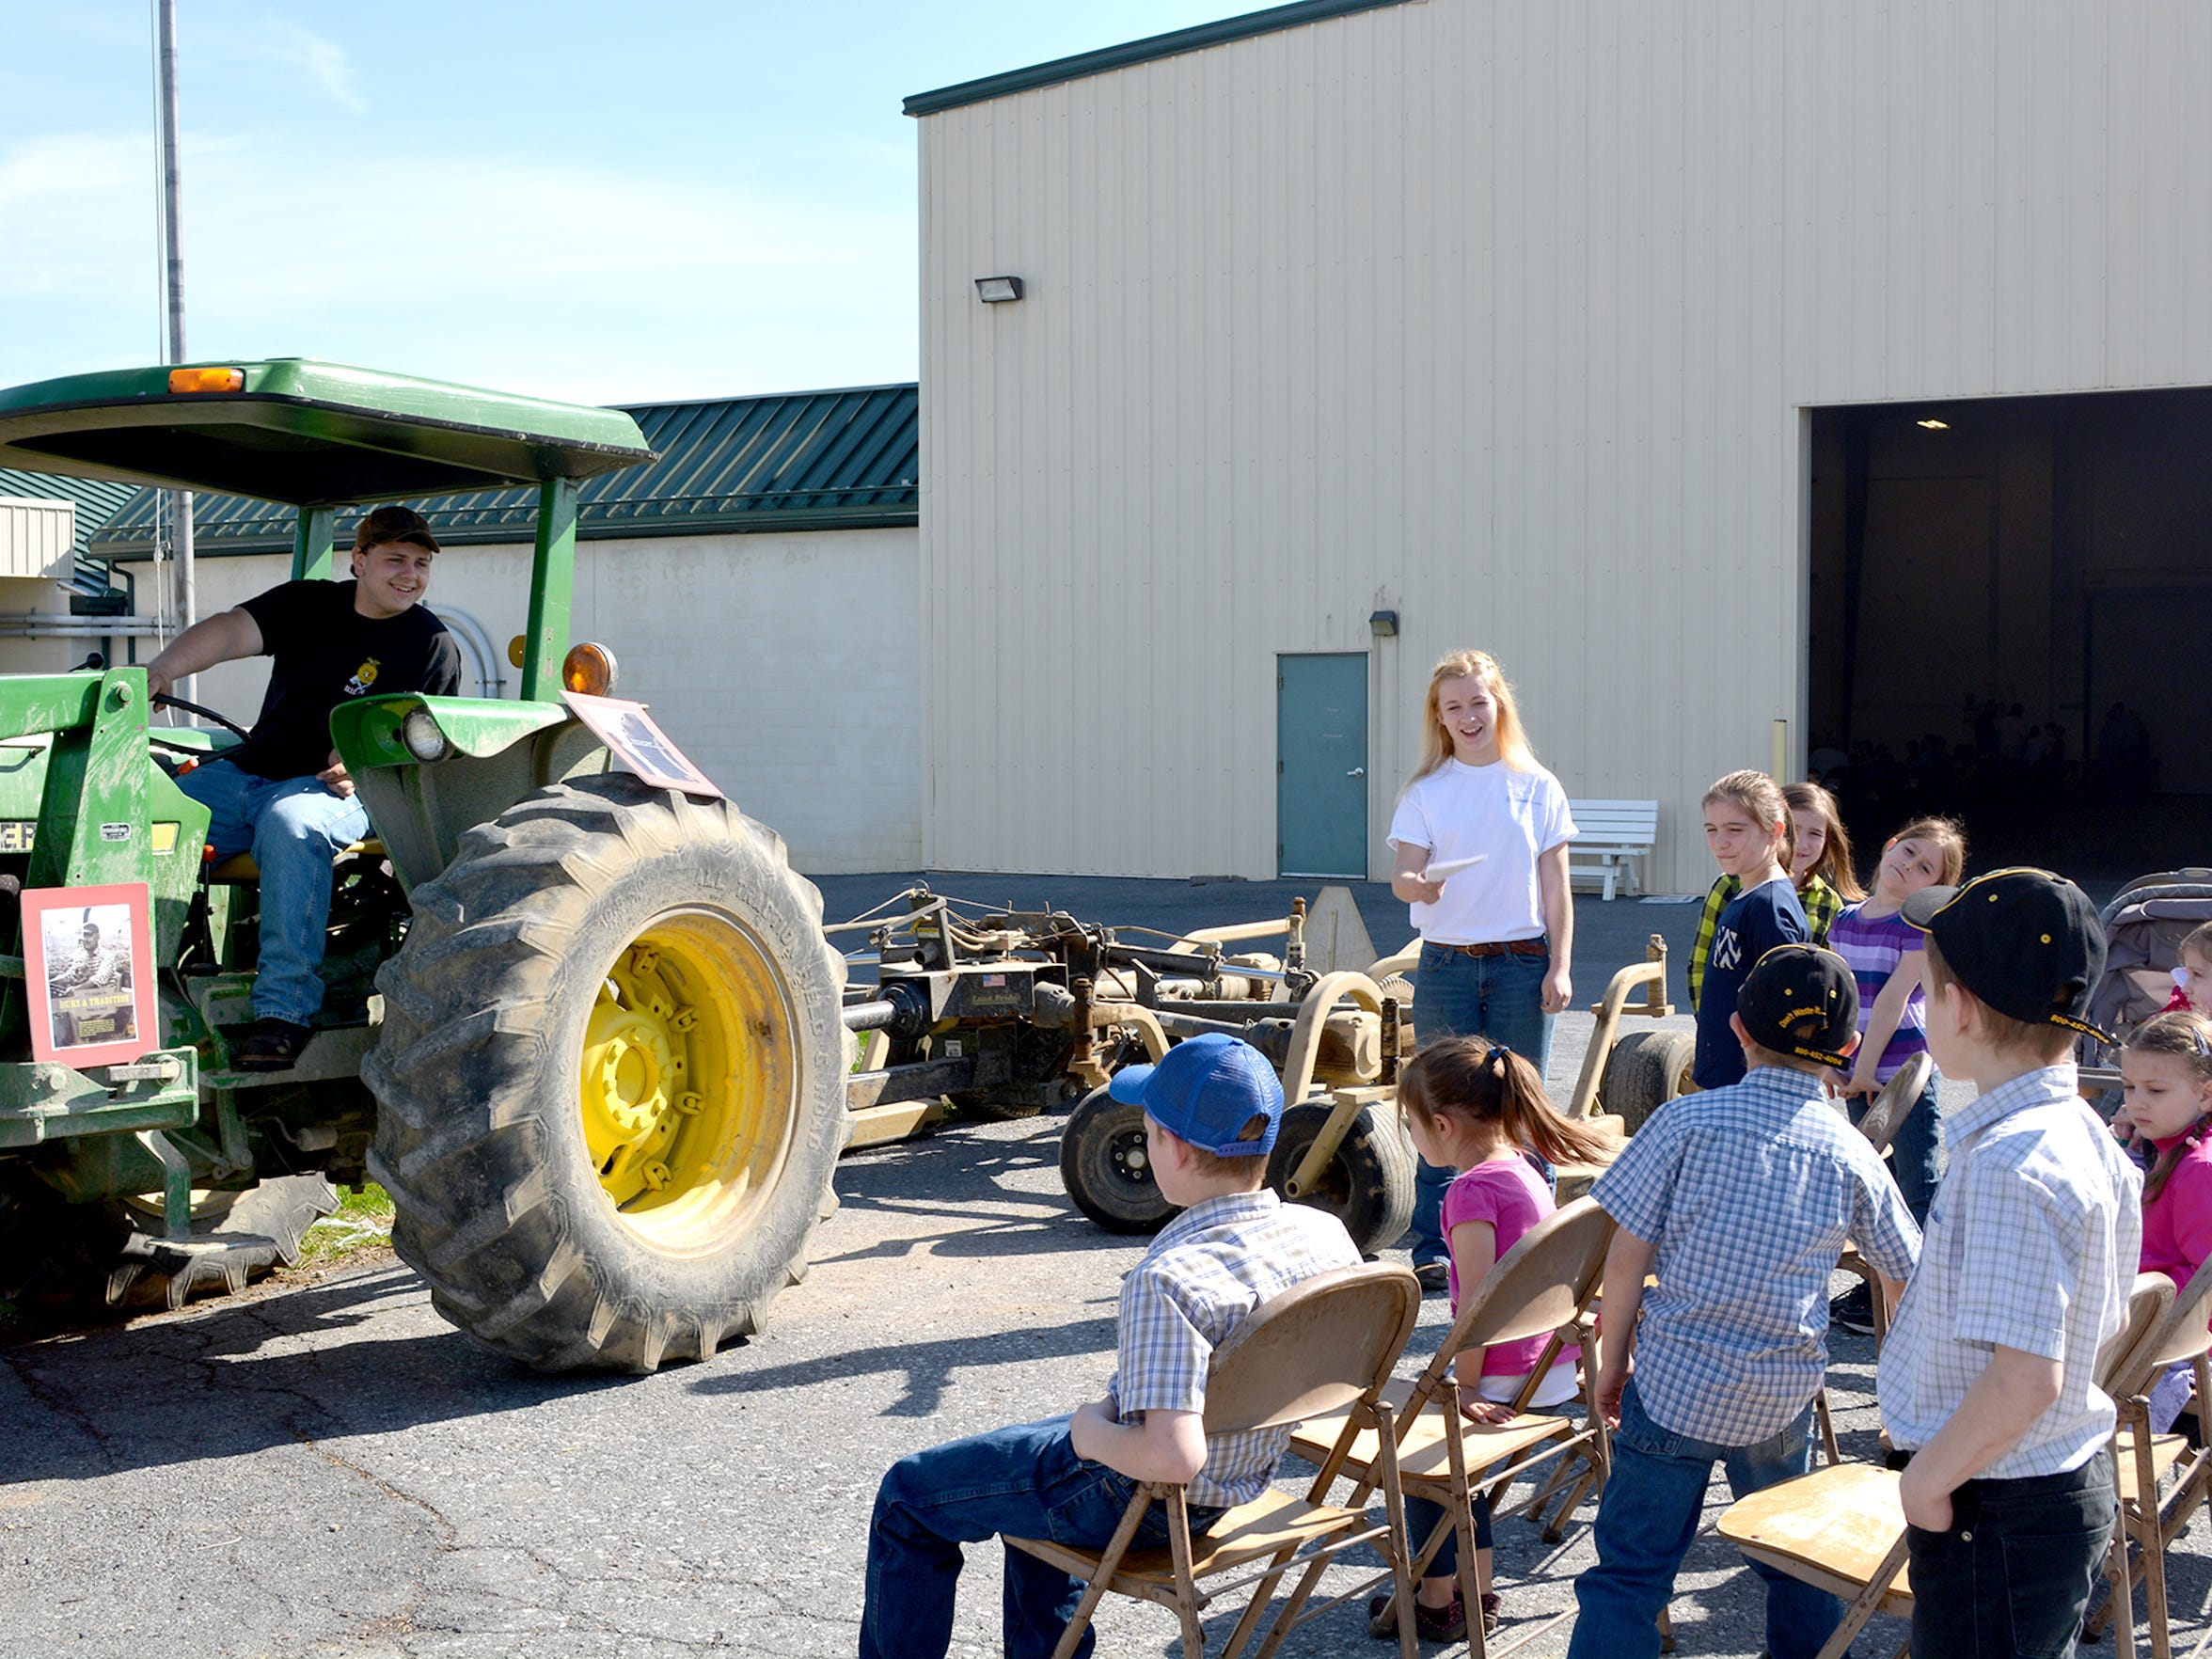 Attendees at Lebanon County Farm and Home Safety Day on April 9, 2015 learn how difficult it is to see people behind you while seated on a tractor.